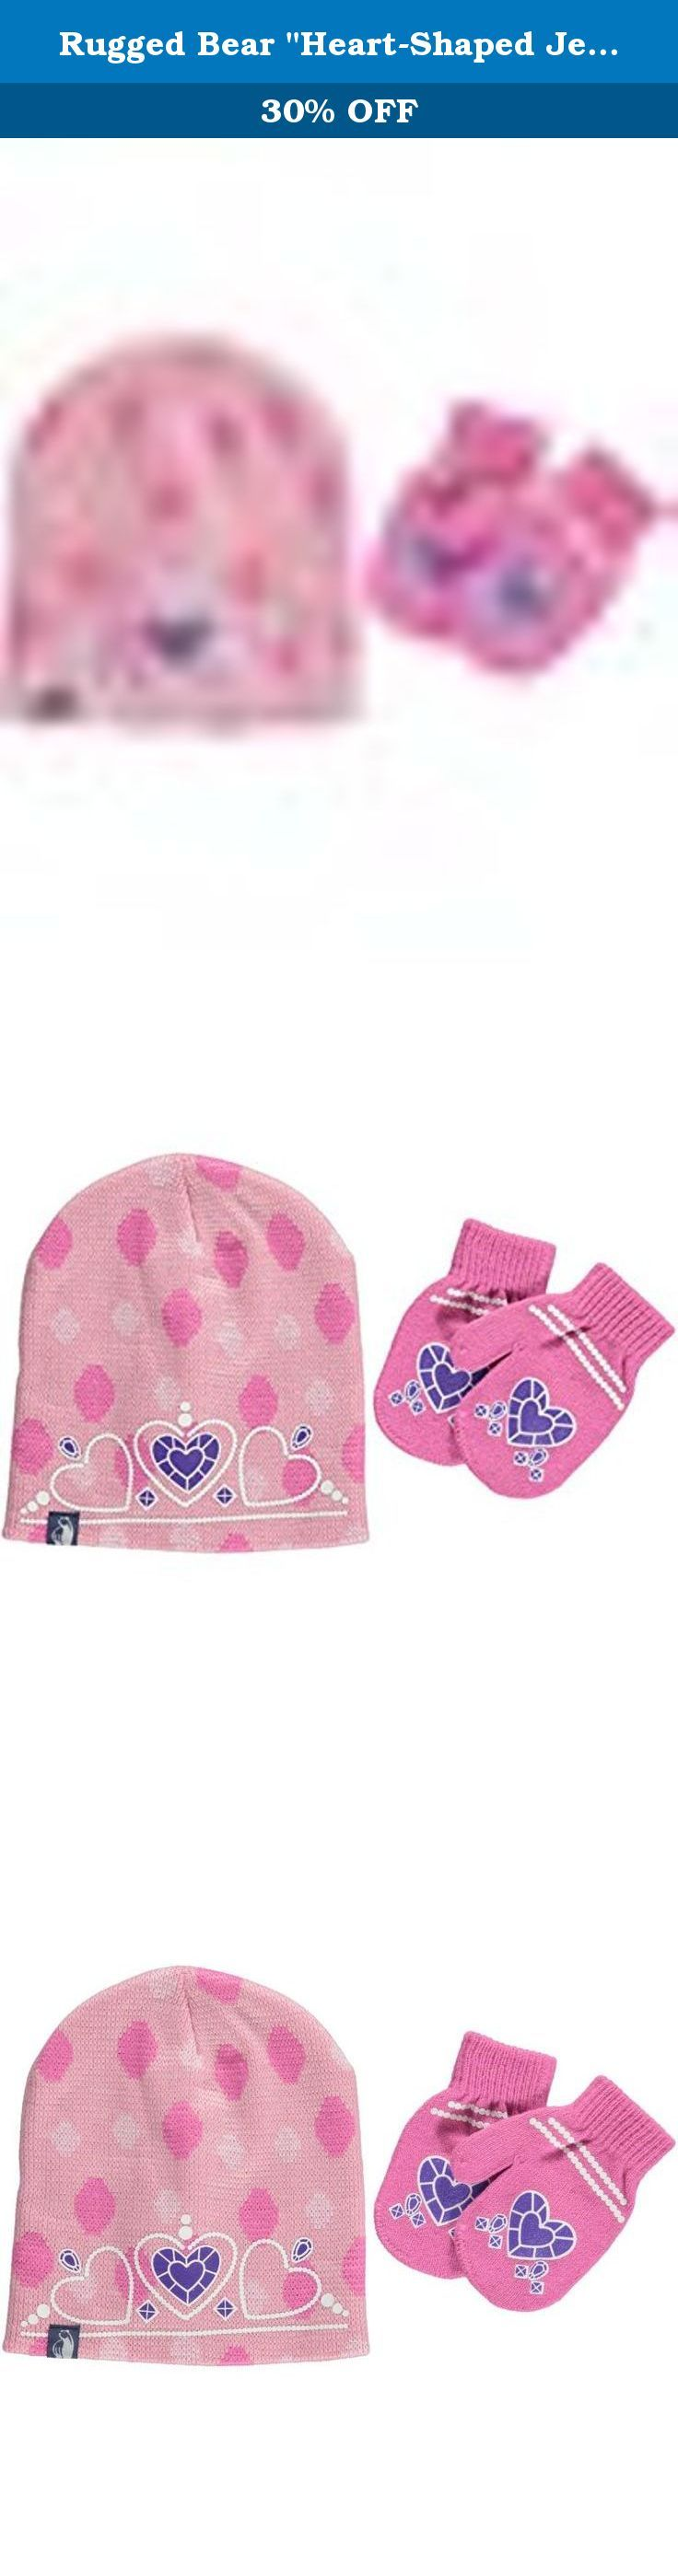 rugged bear heart shaped jewel beanie mittens set light pink